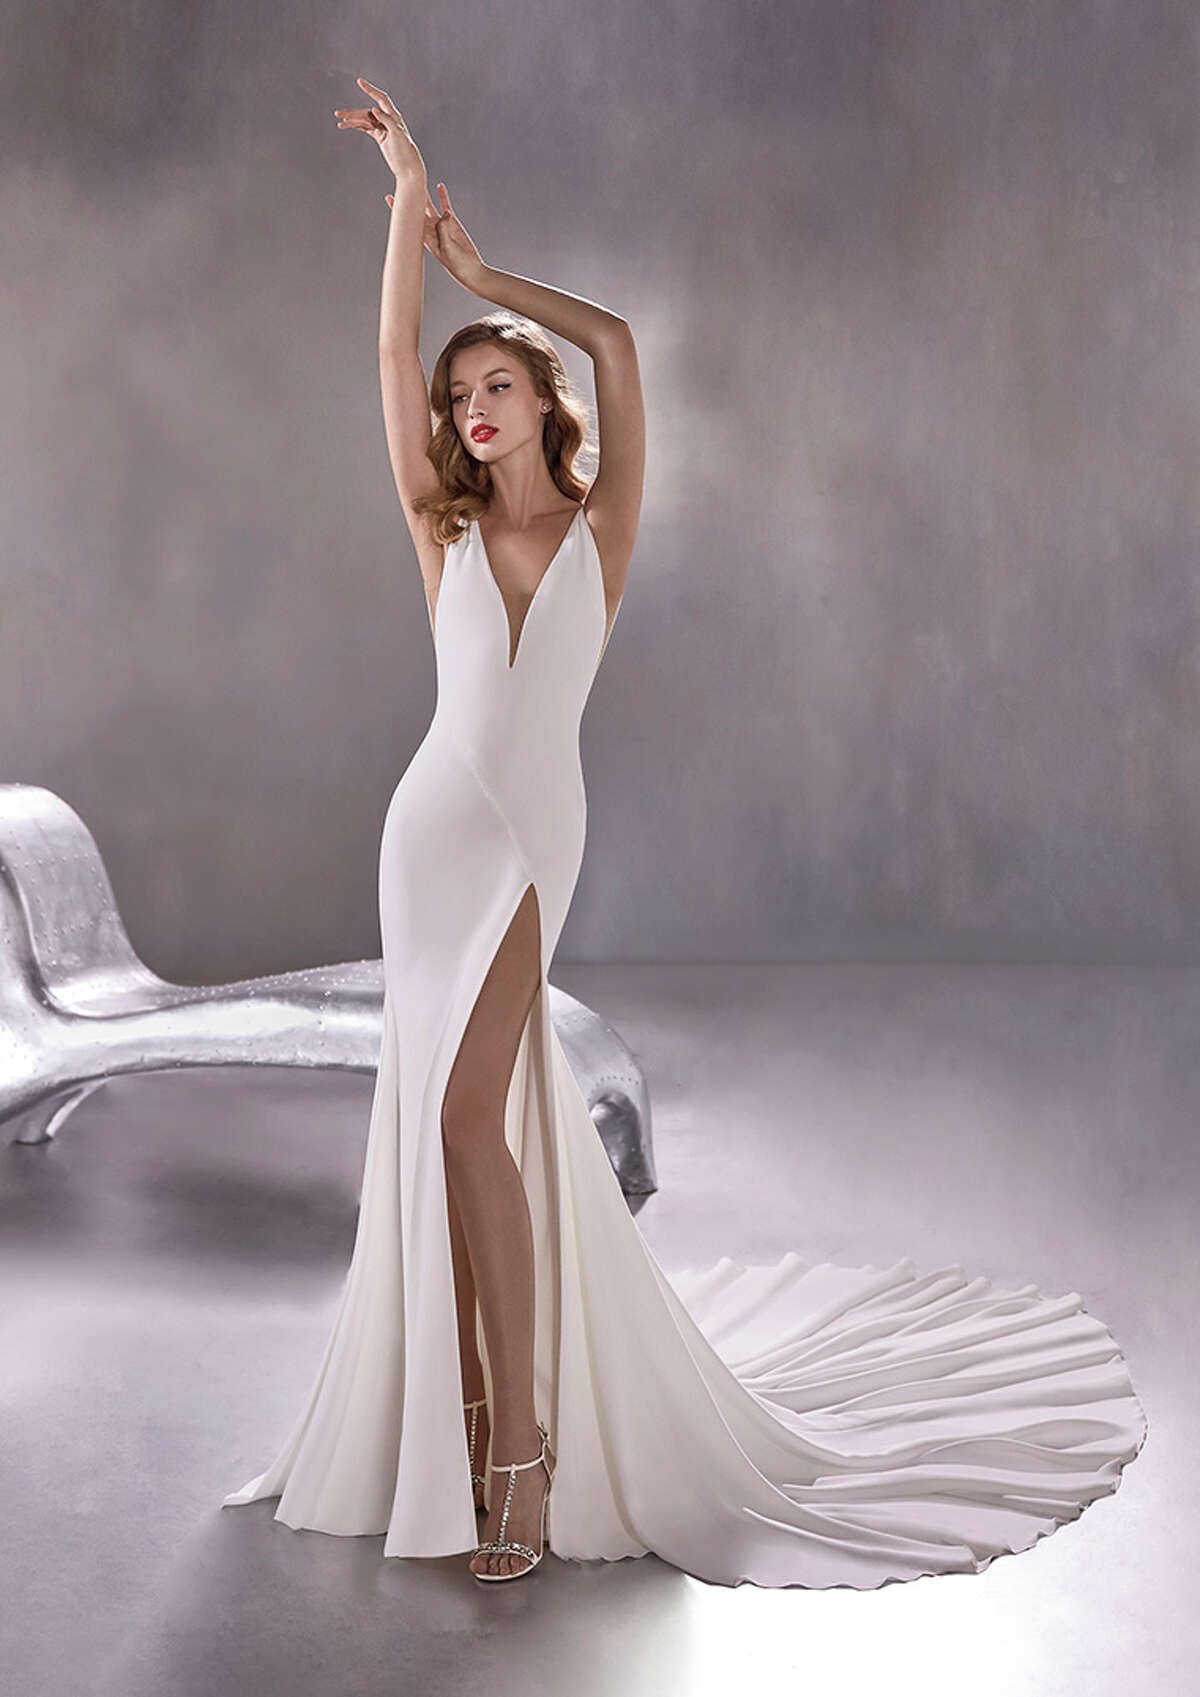 Blue Moon B Pronovias Boutique Houston is one of seven new bridal stores that the brand is opening across the country, joining the first-ever American store in New York.